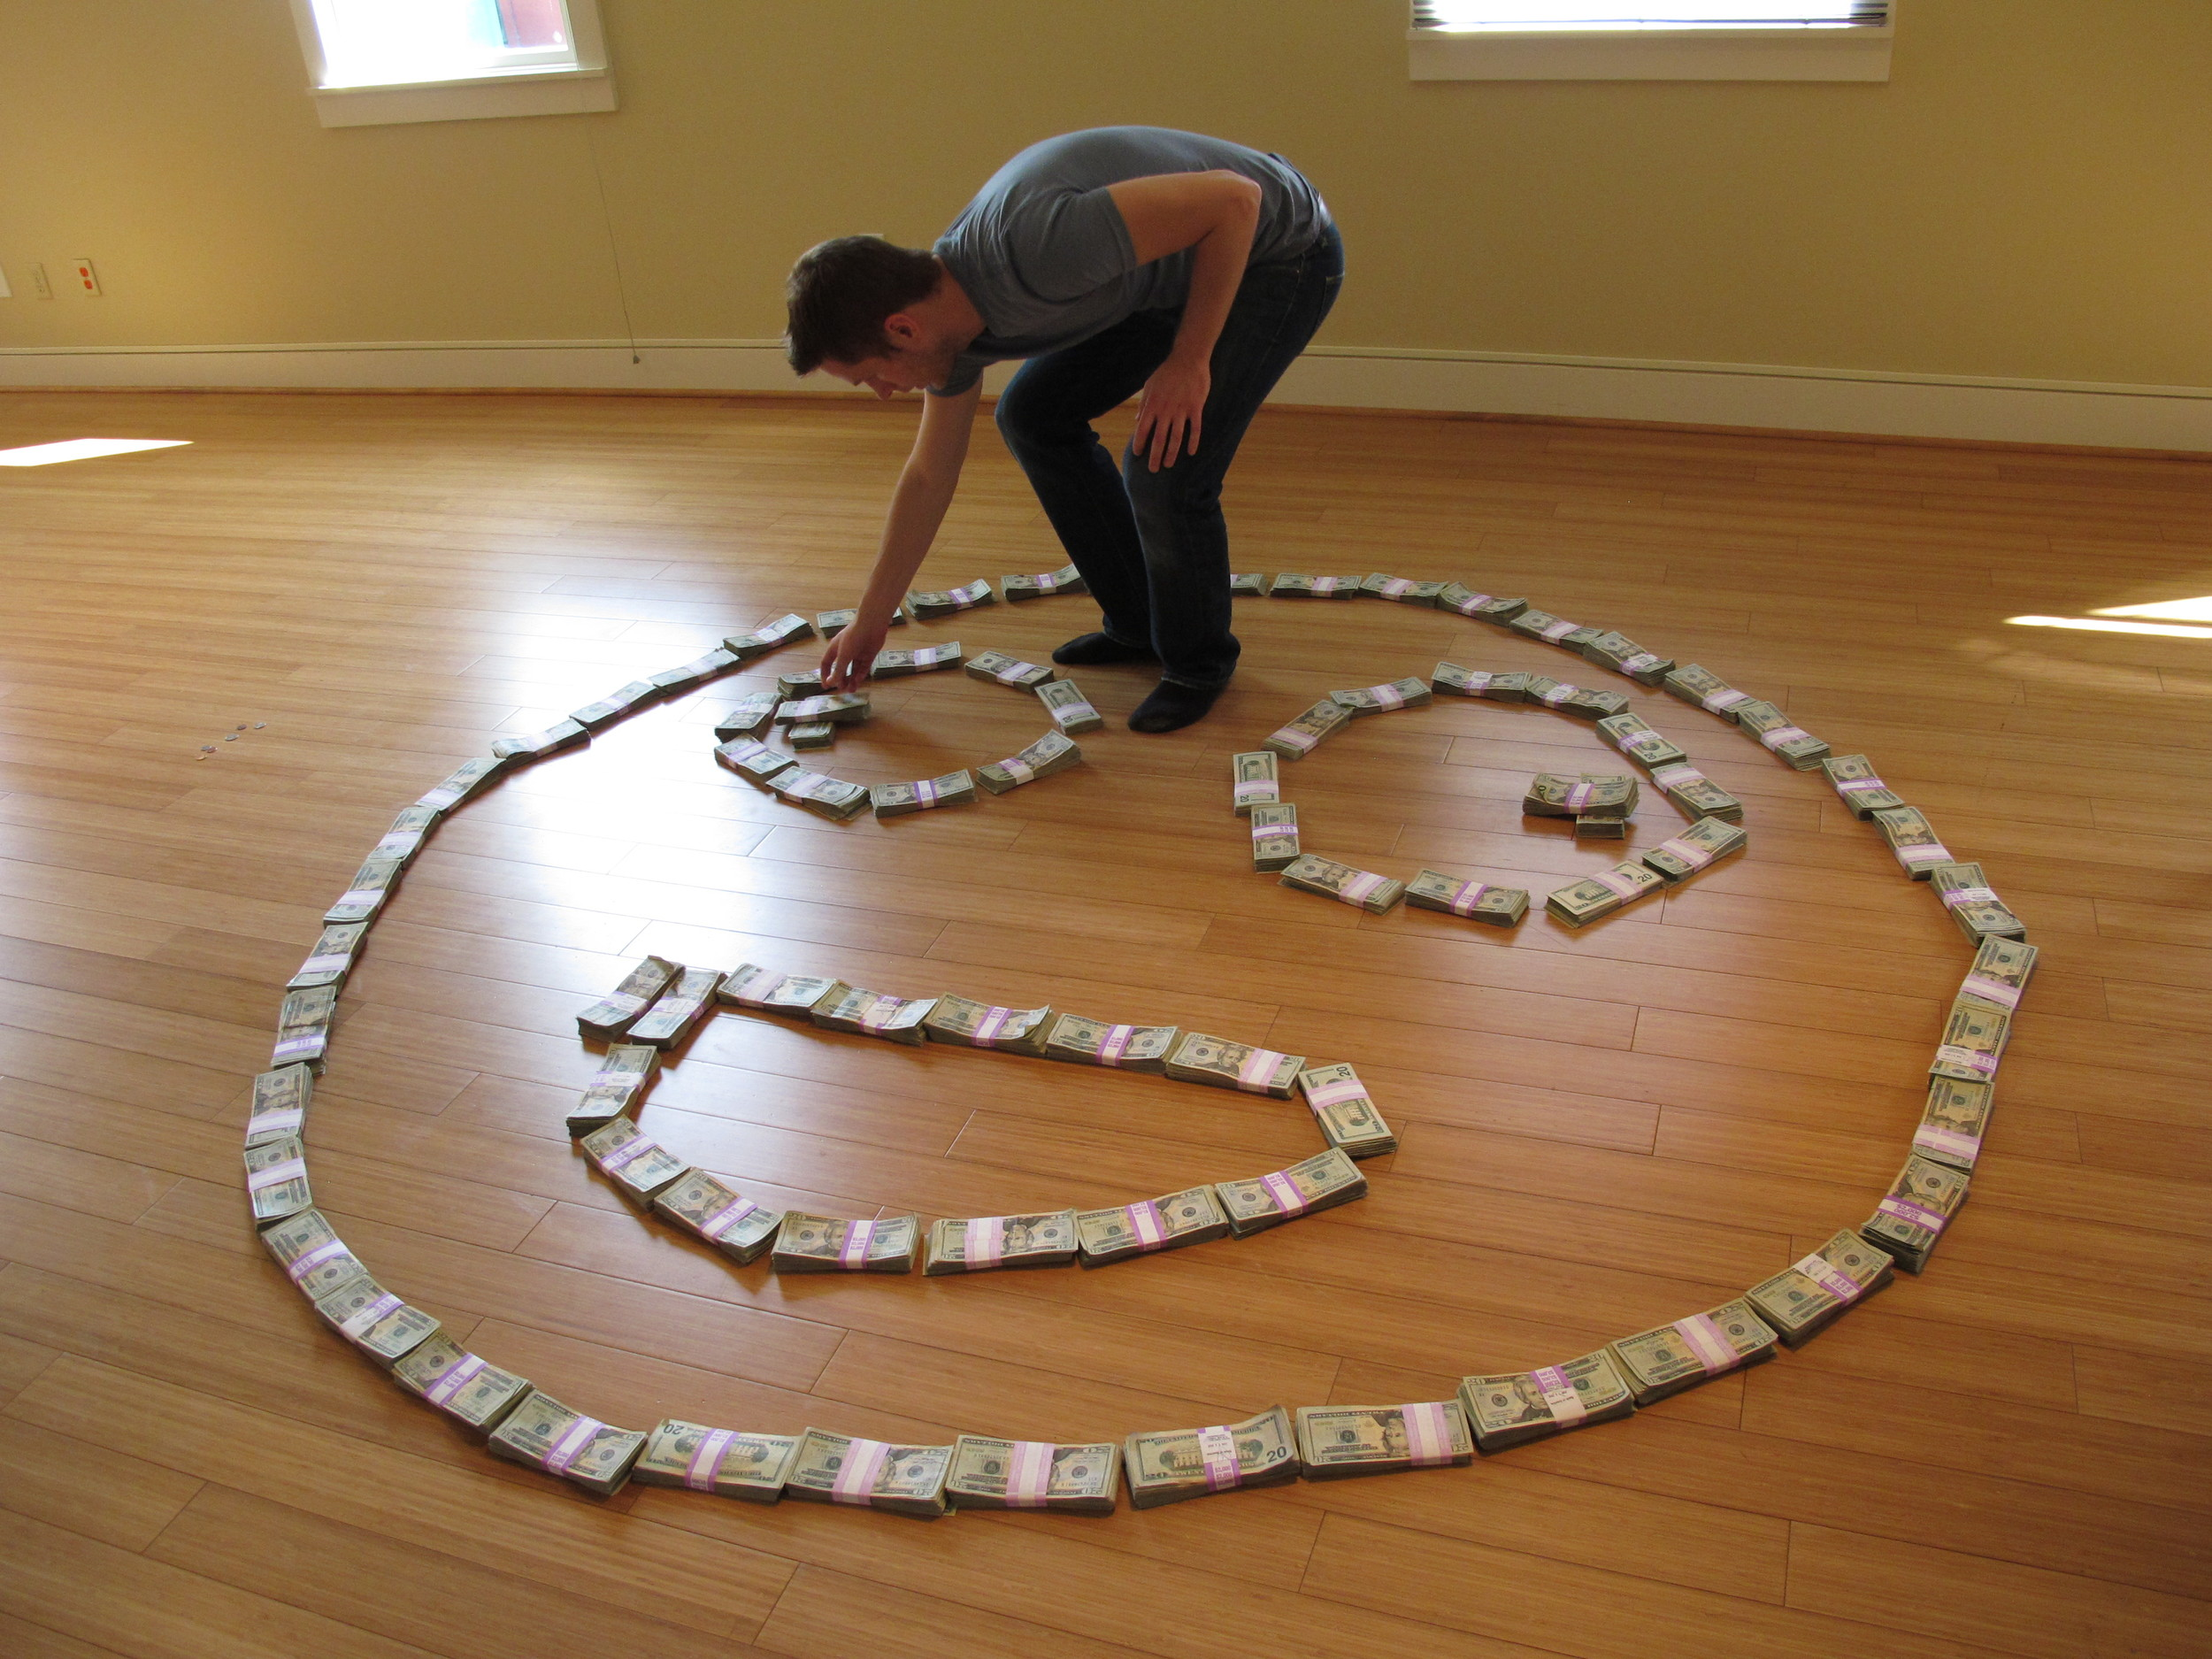 Matthew Inman, the cartoonist behind The Oatmeal, makes a smiley face out of over $200,000 in cash he raised in donations.